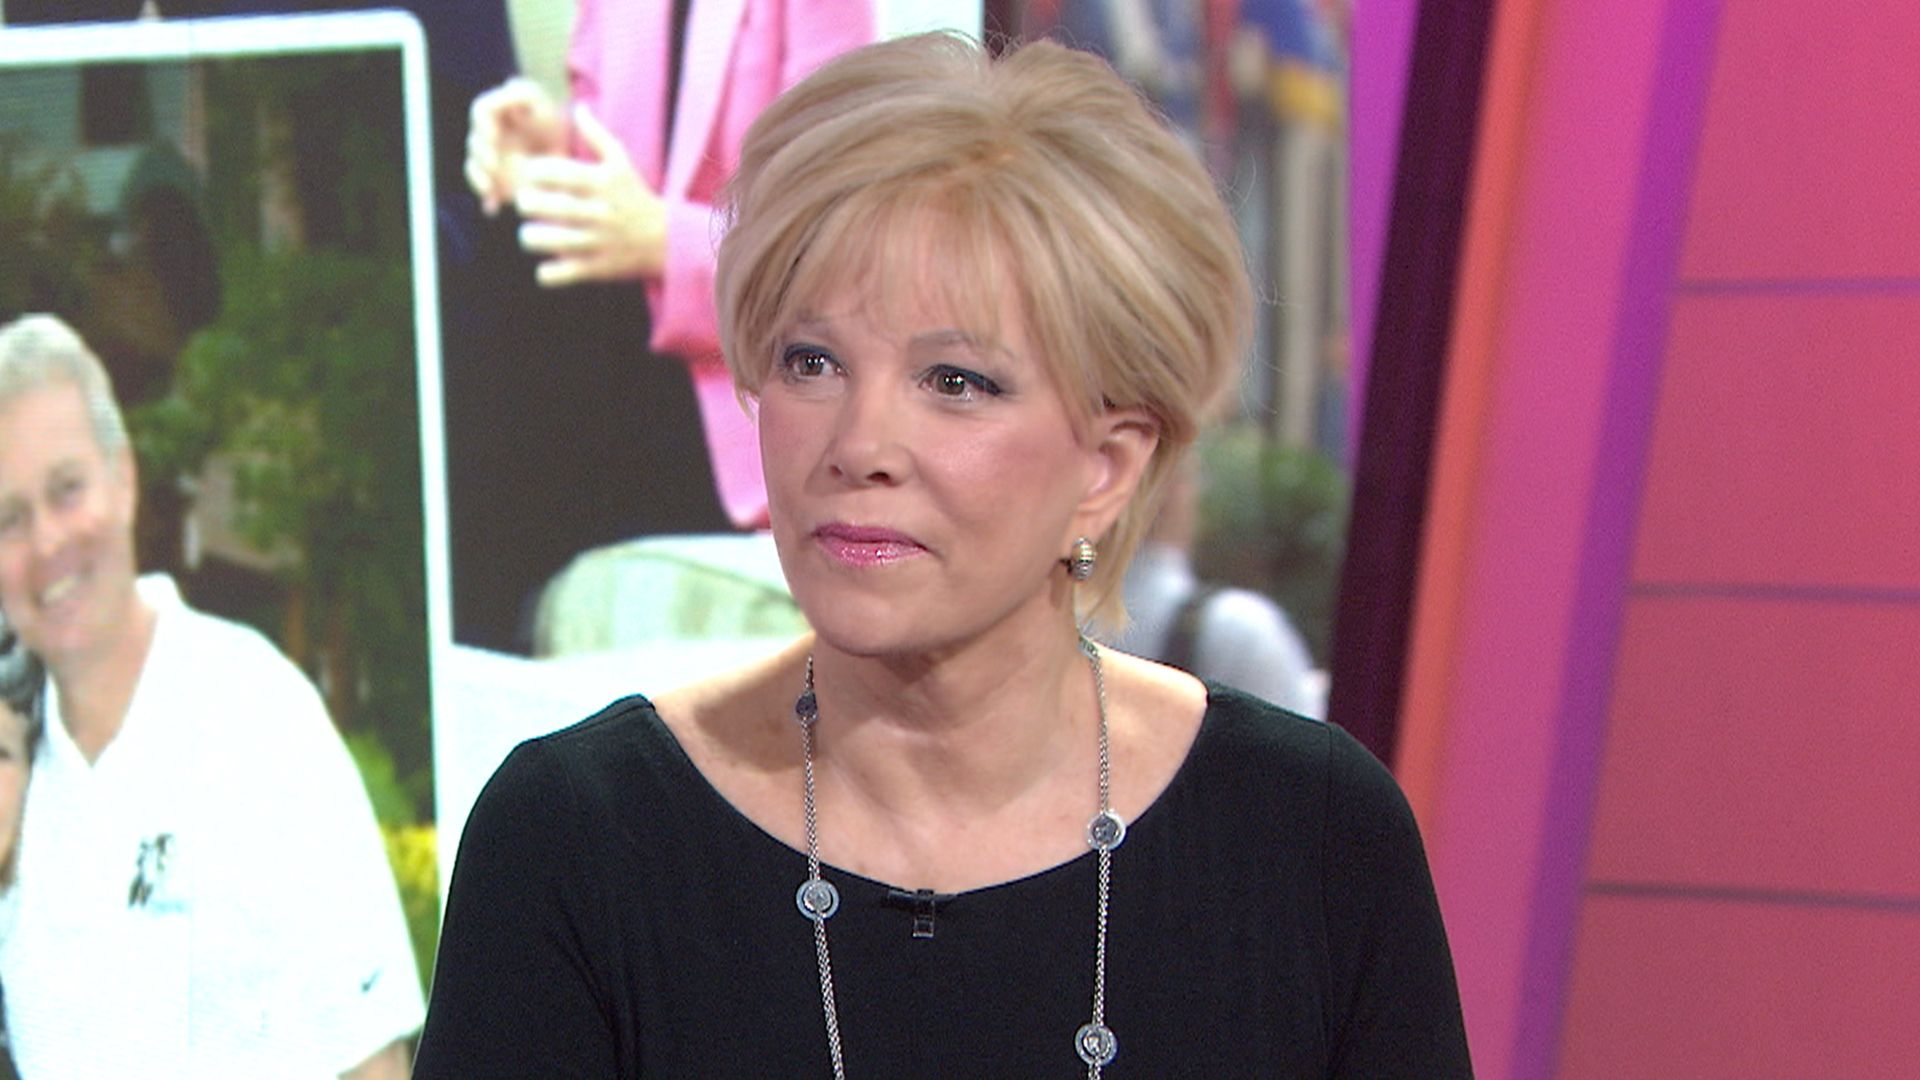 10 essential things Joan Lunden learned about breast cancer